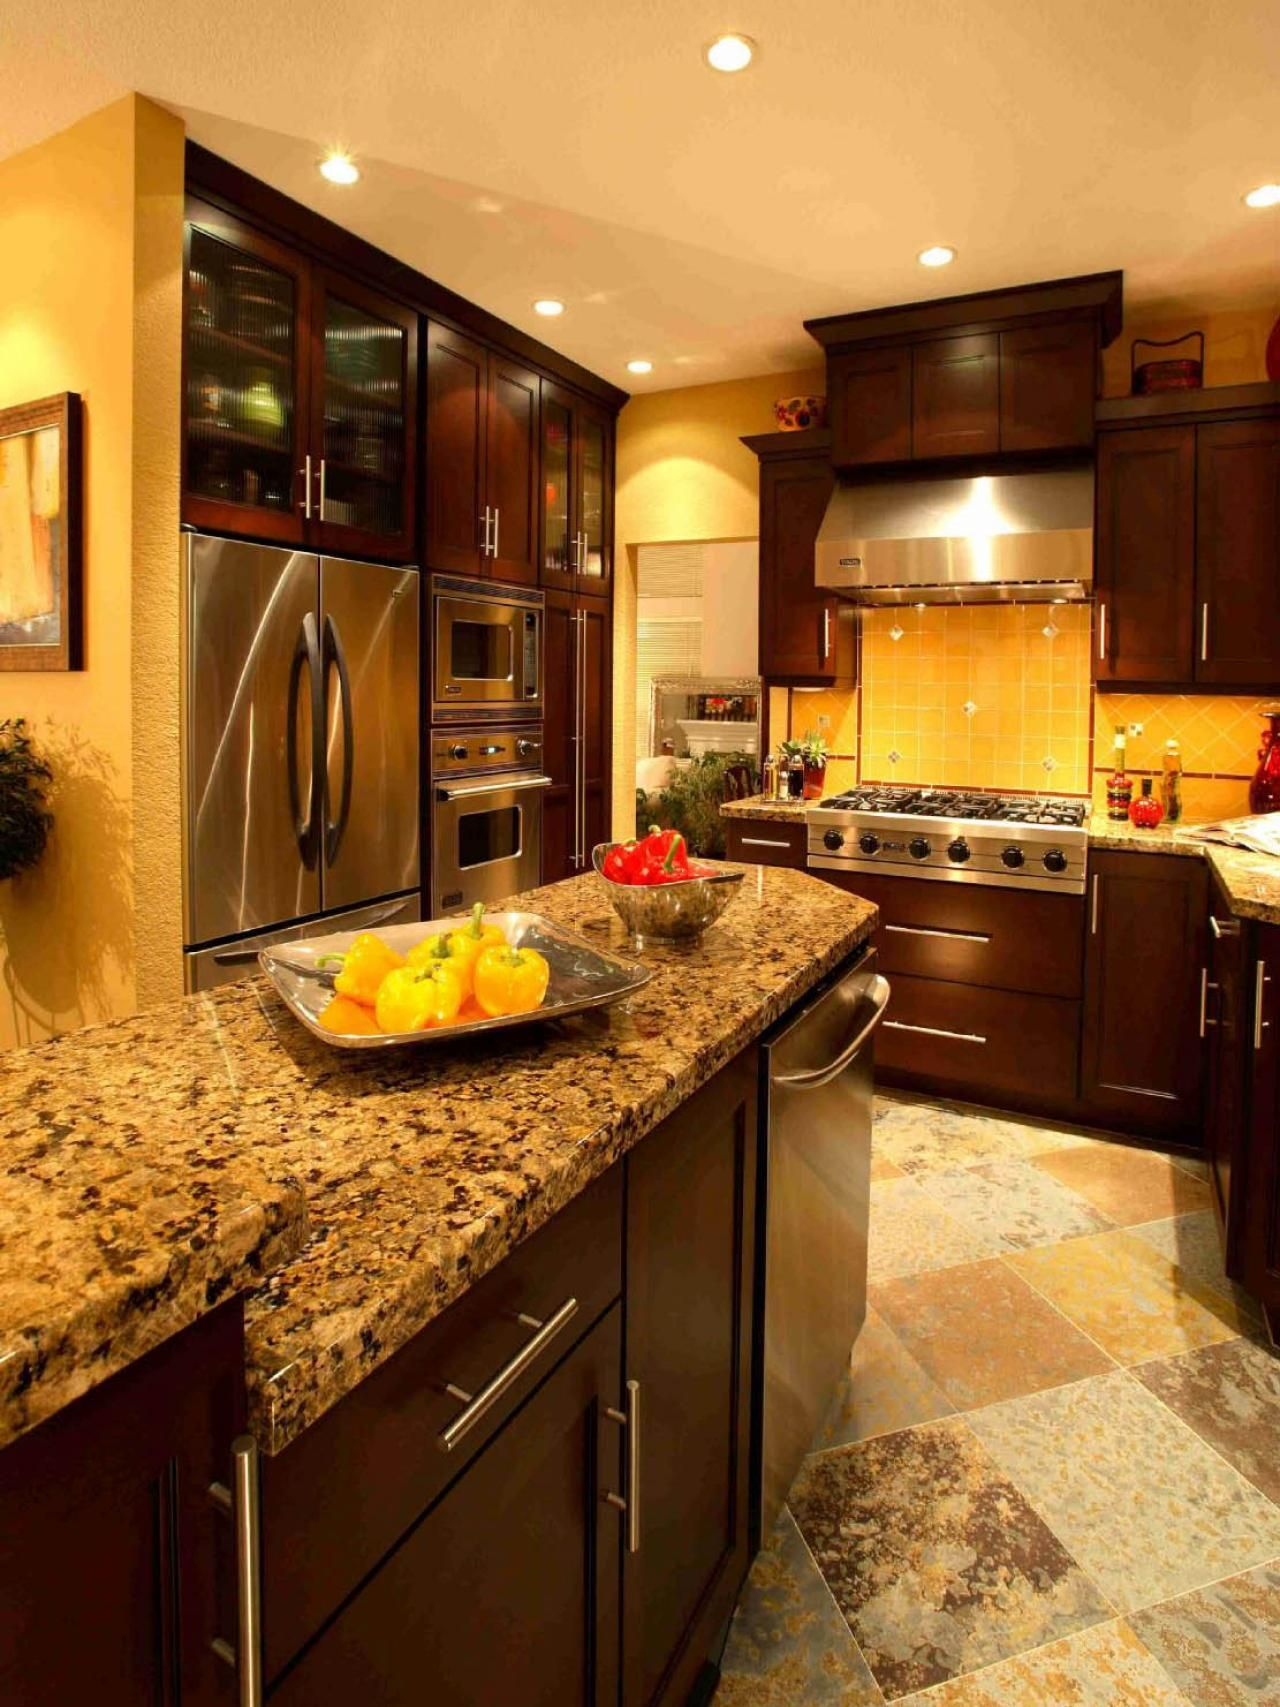 This thoughtfully designed kitchen is inspired by Napa Valley with